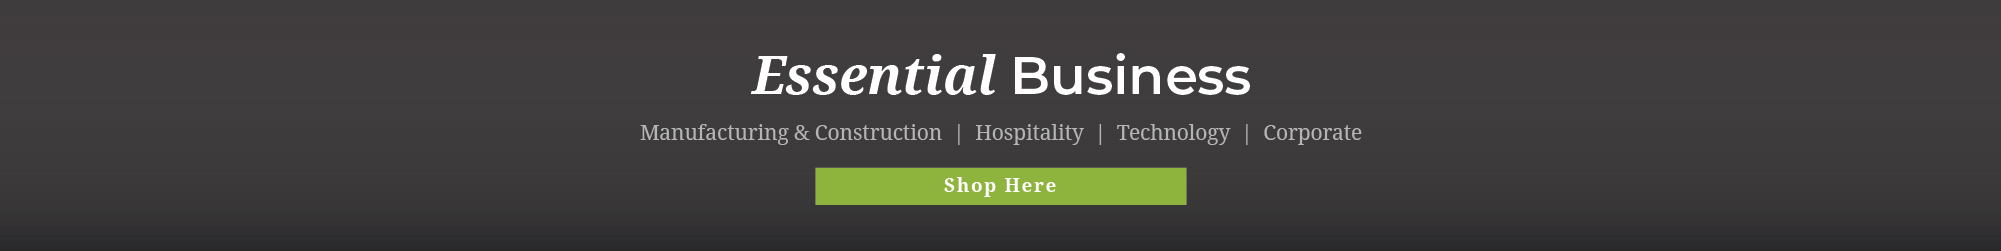 Essential Business